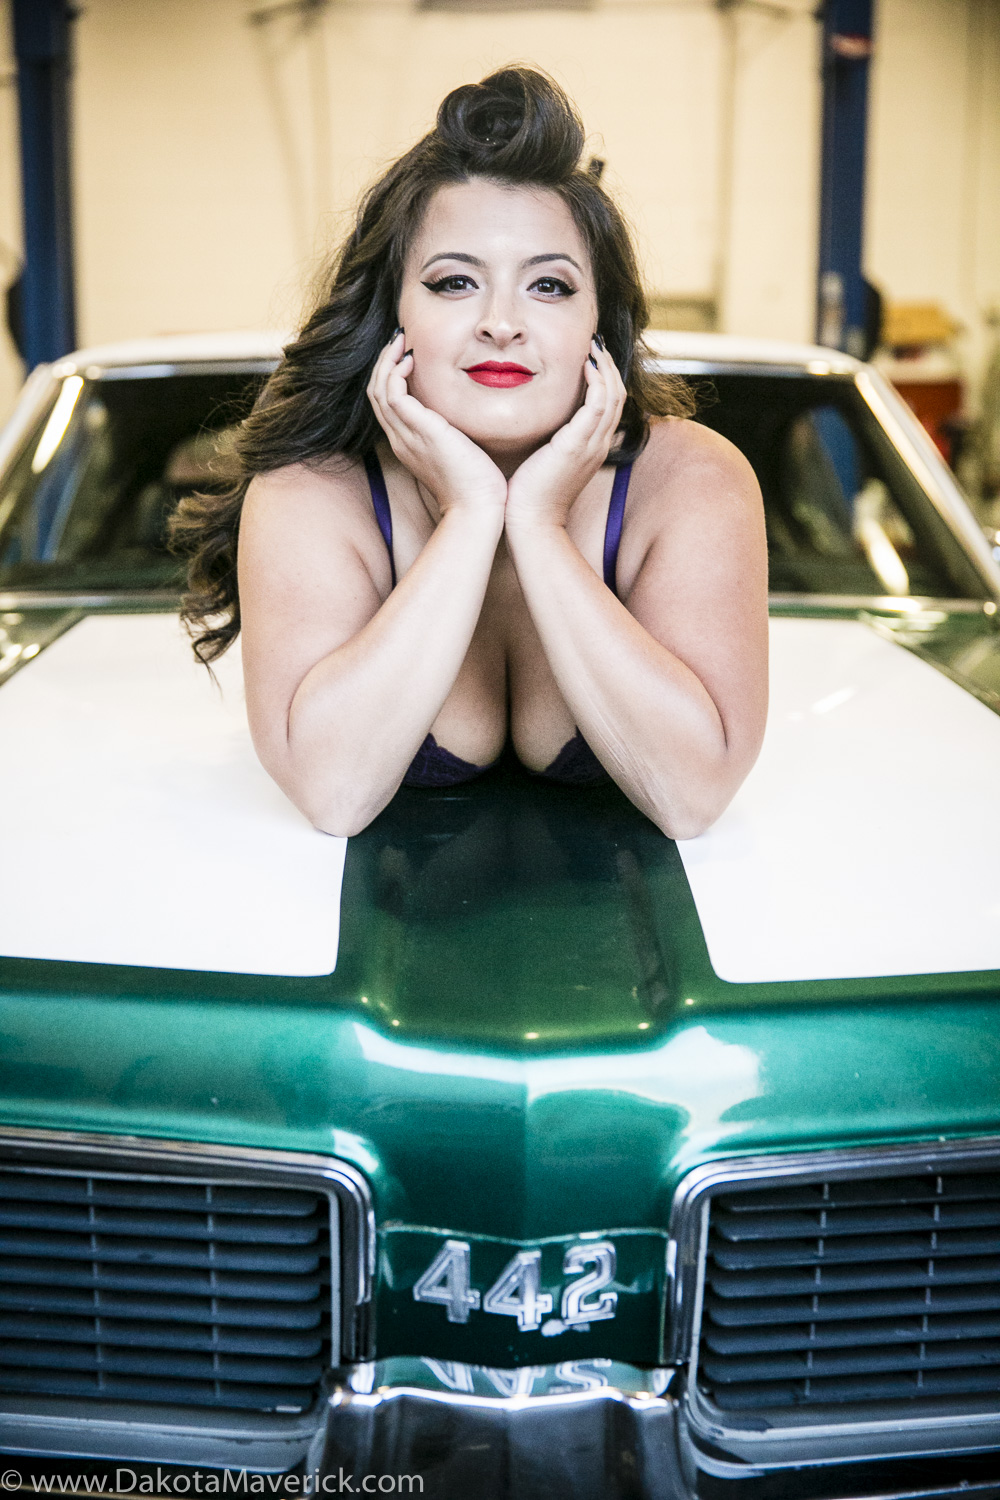 Vancouver Pinup Photographer - April (14 of 19).jpg